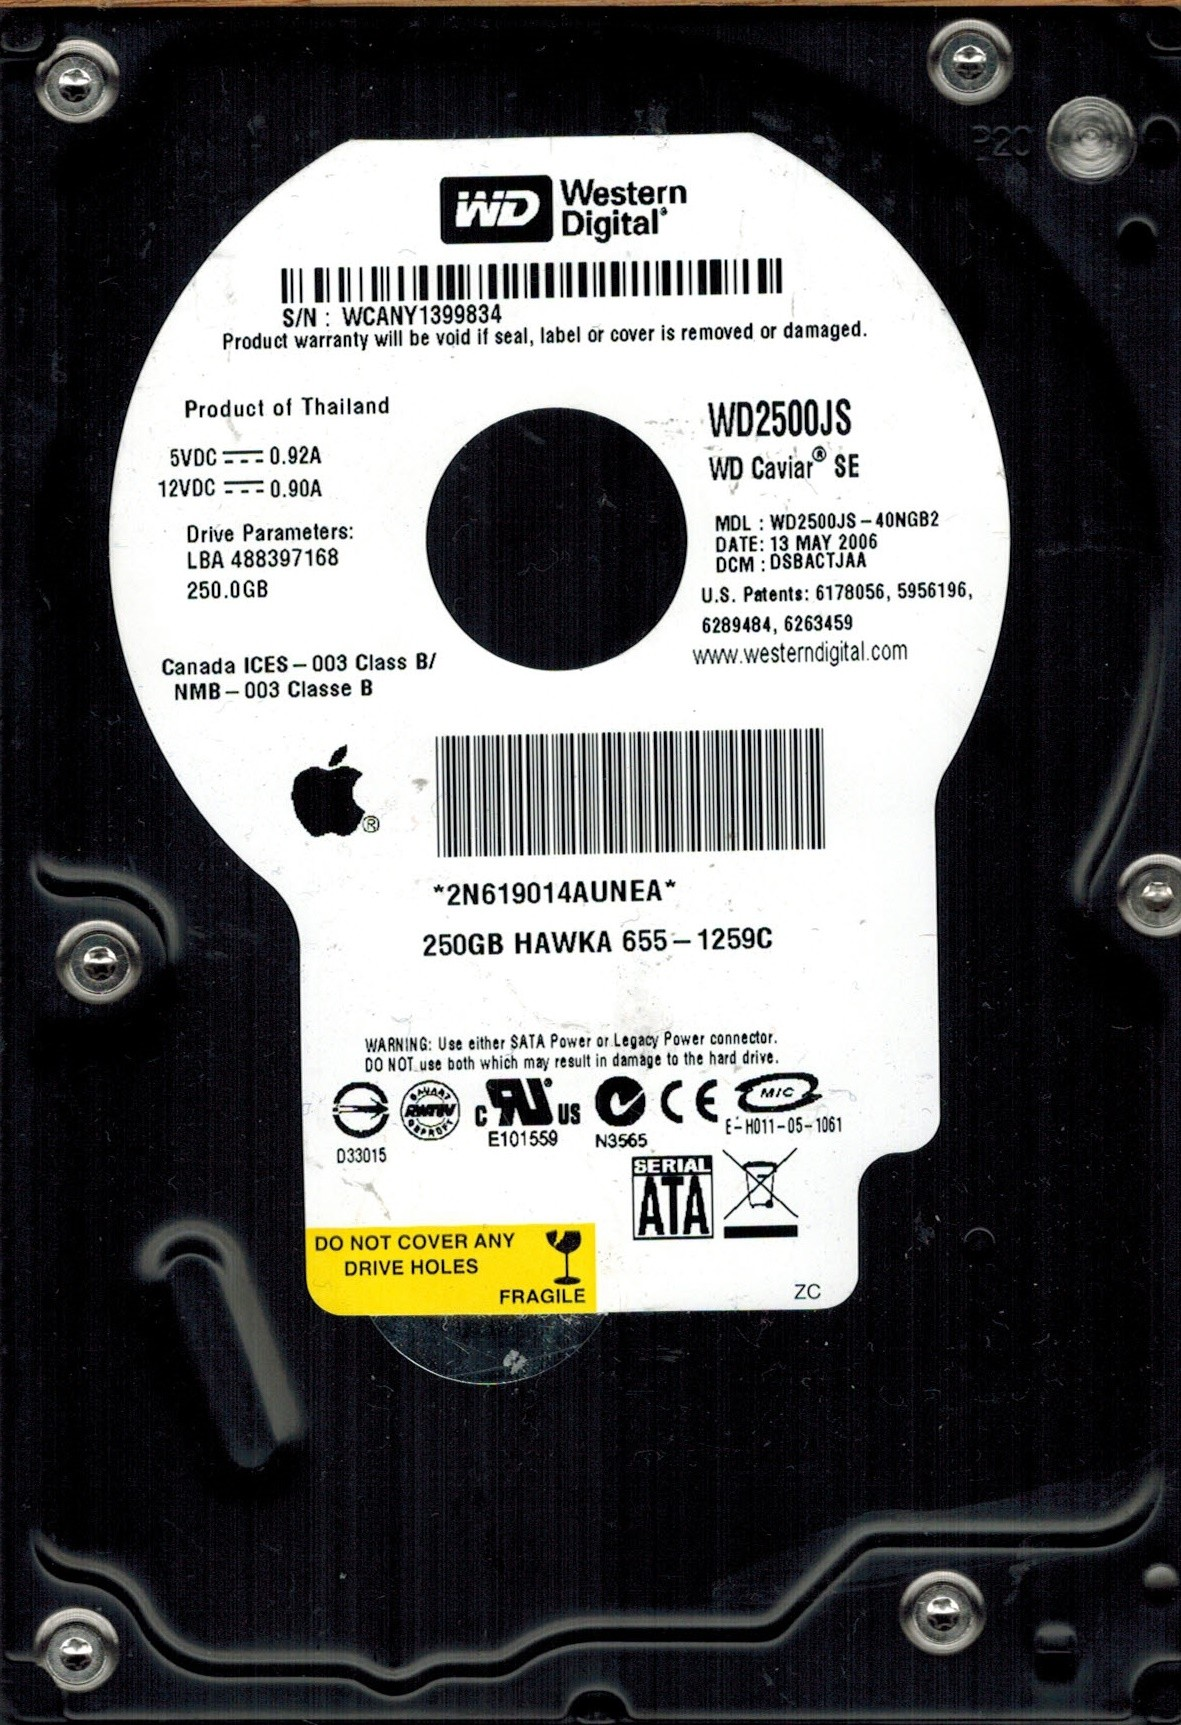 Western Digital WD2500JS-40NGB2 DCM: DSBACTJAA APPLE MAC 250GB